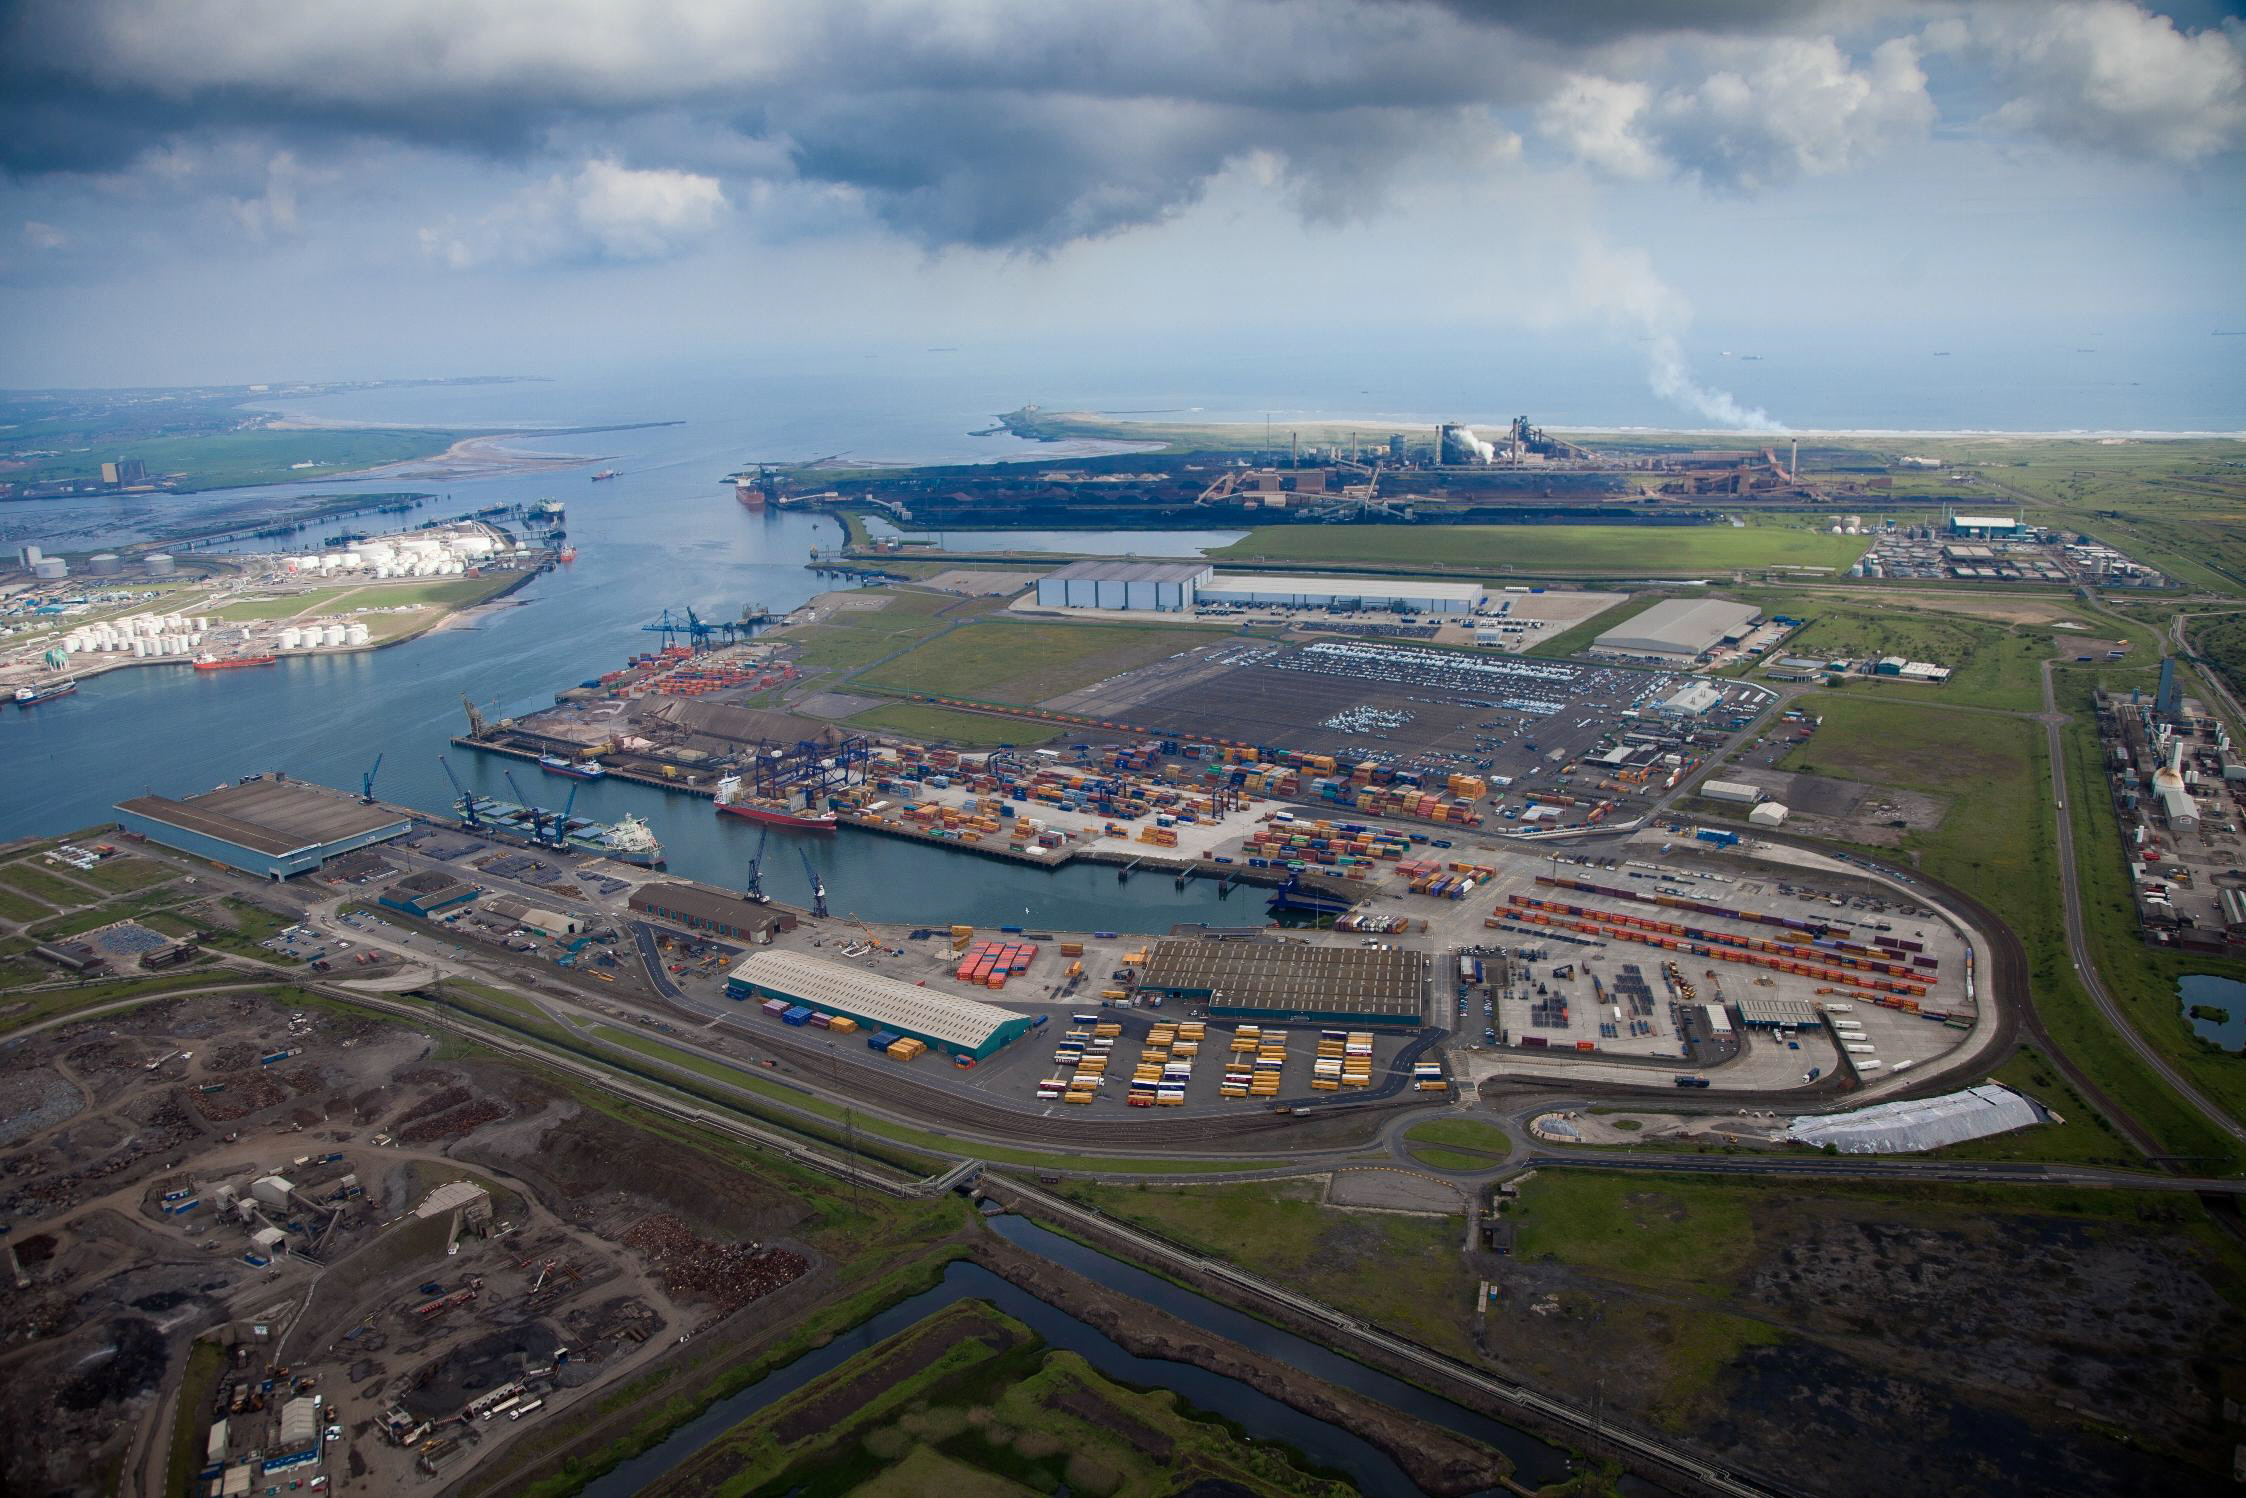 FROM THE AIR: Teesport, with the redundant steelworks above and the North Sea beyond. Could this area become a low tax haven for manufacturing?